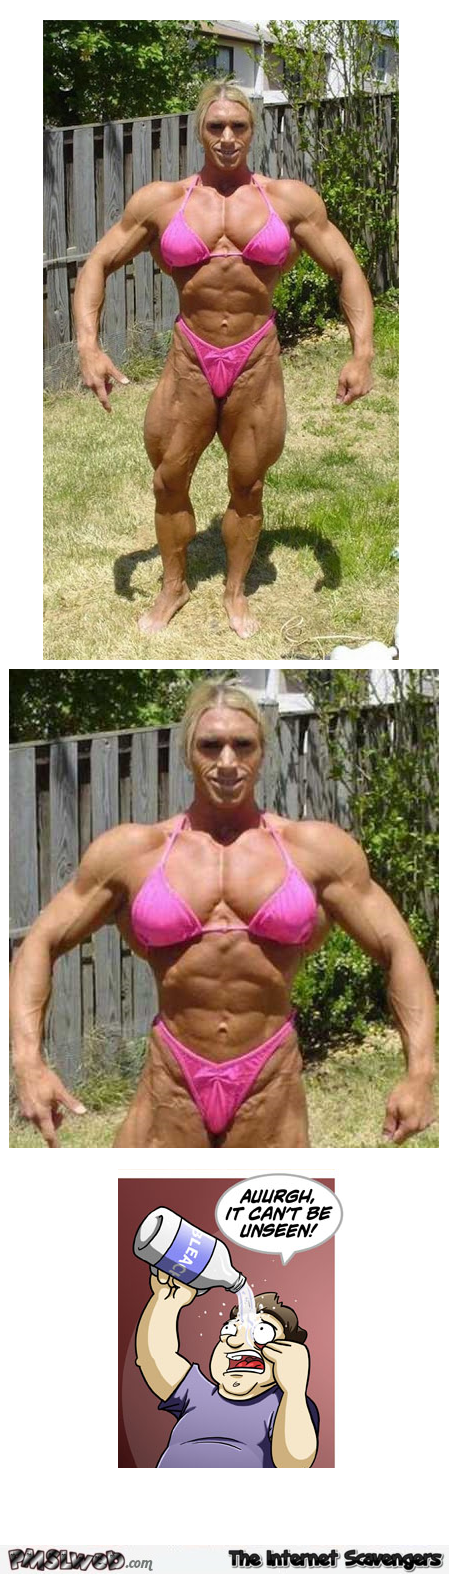 Funny ugly female bodybuilder @PMSLweb.com